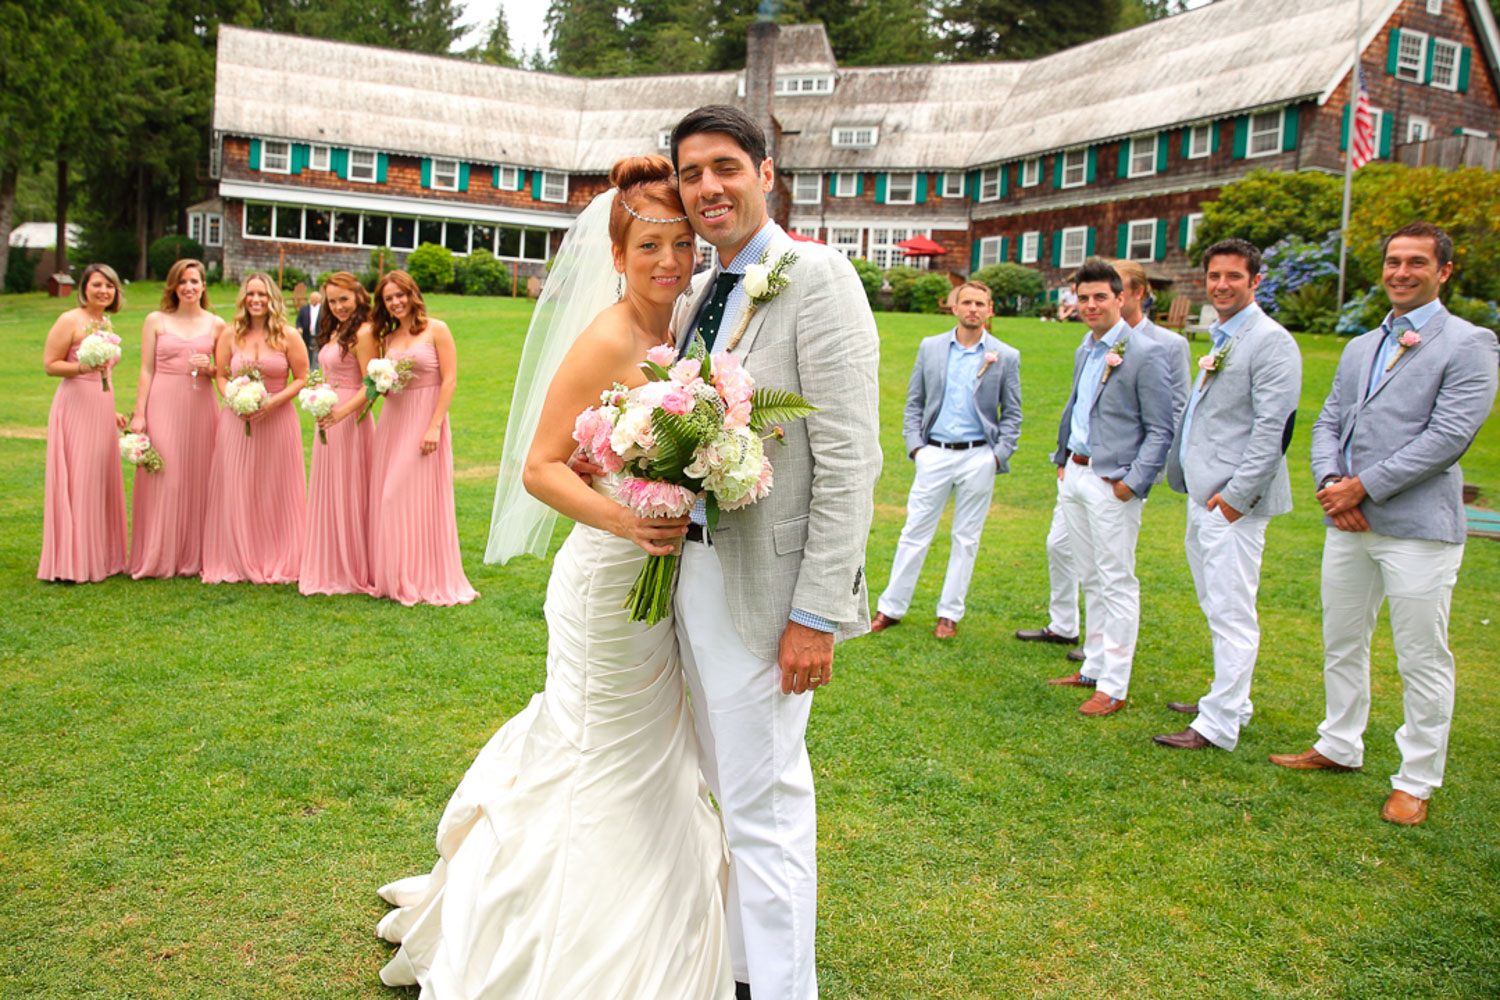 Wedding Photos Lake Quinault Lodge Washington52.jpg